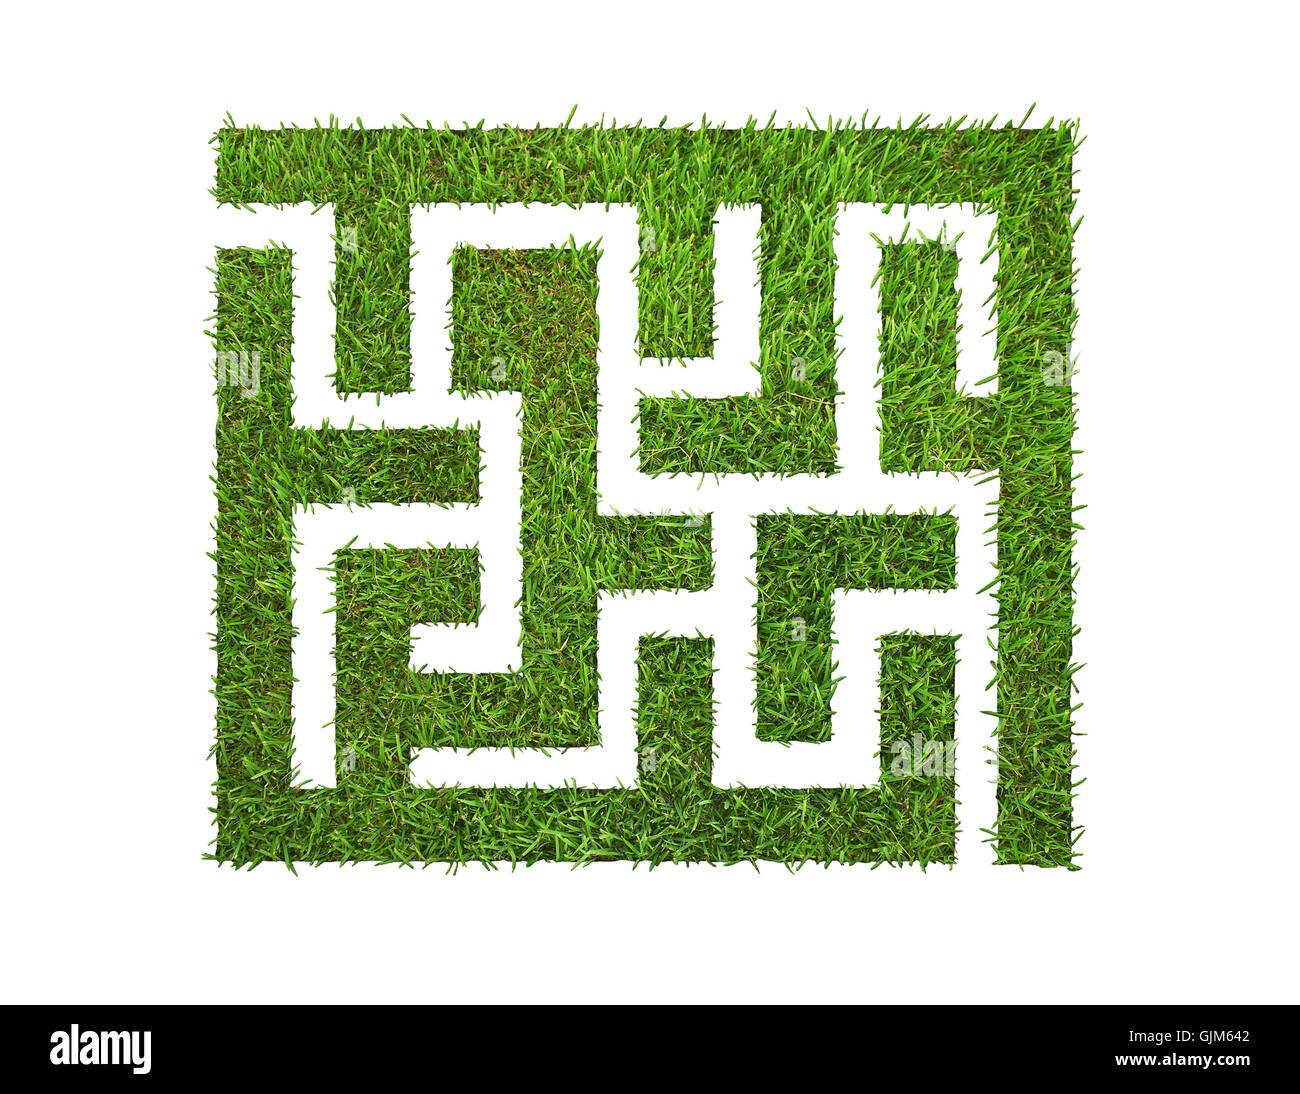 green grass maze, isolated on white - Stock Image